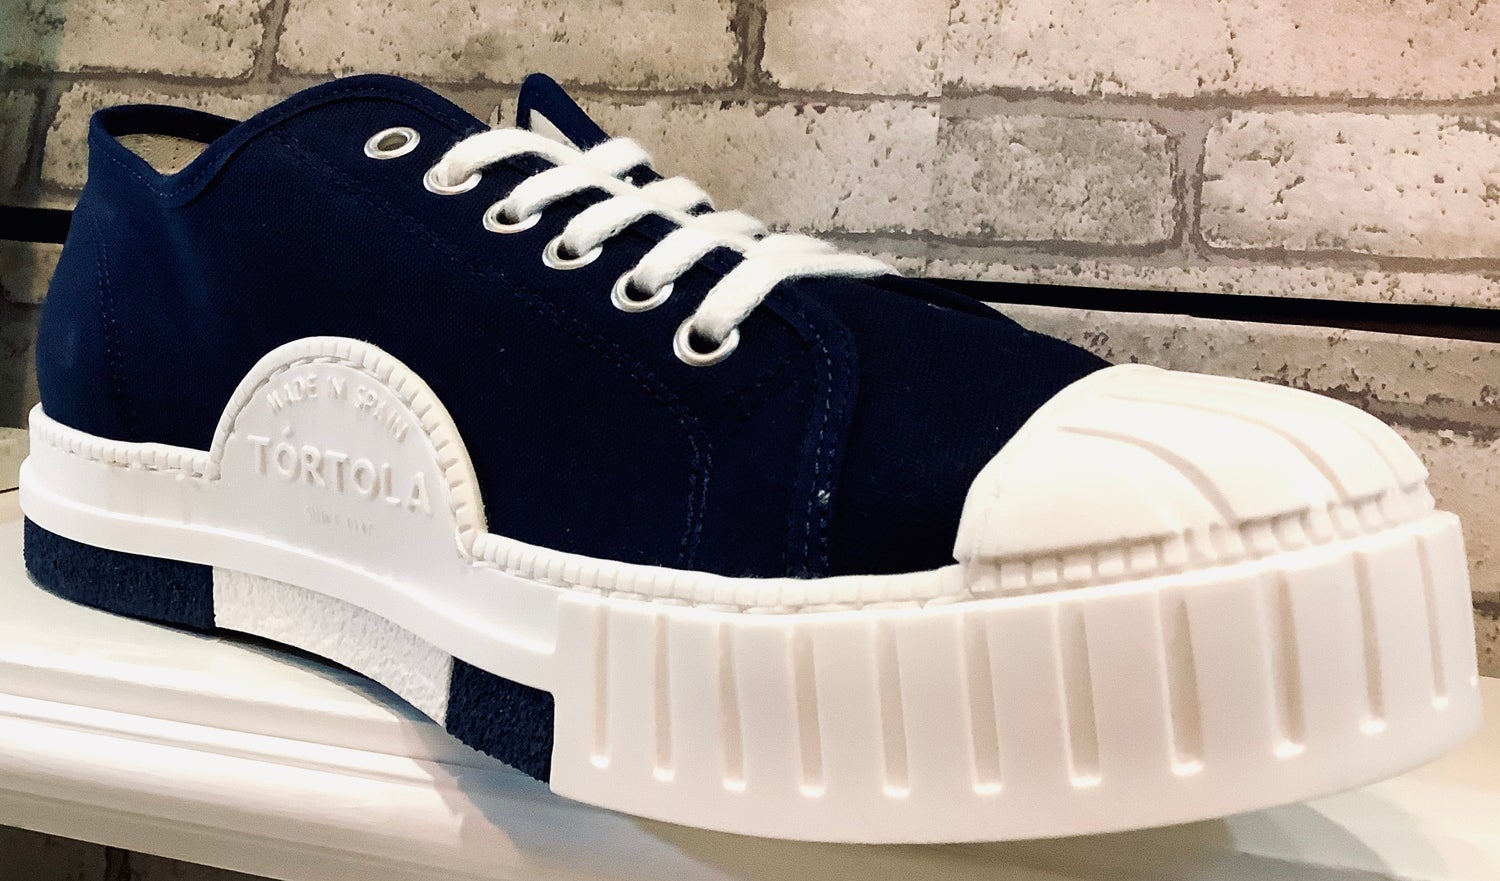 Image of Tortola lo top navy sneaker shoes made in spain